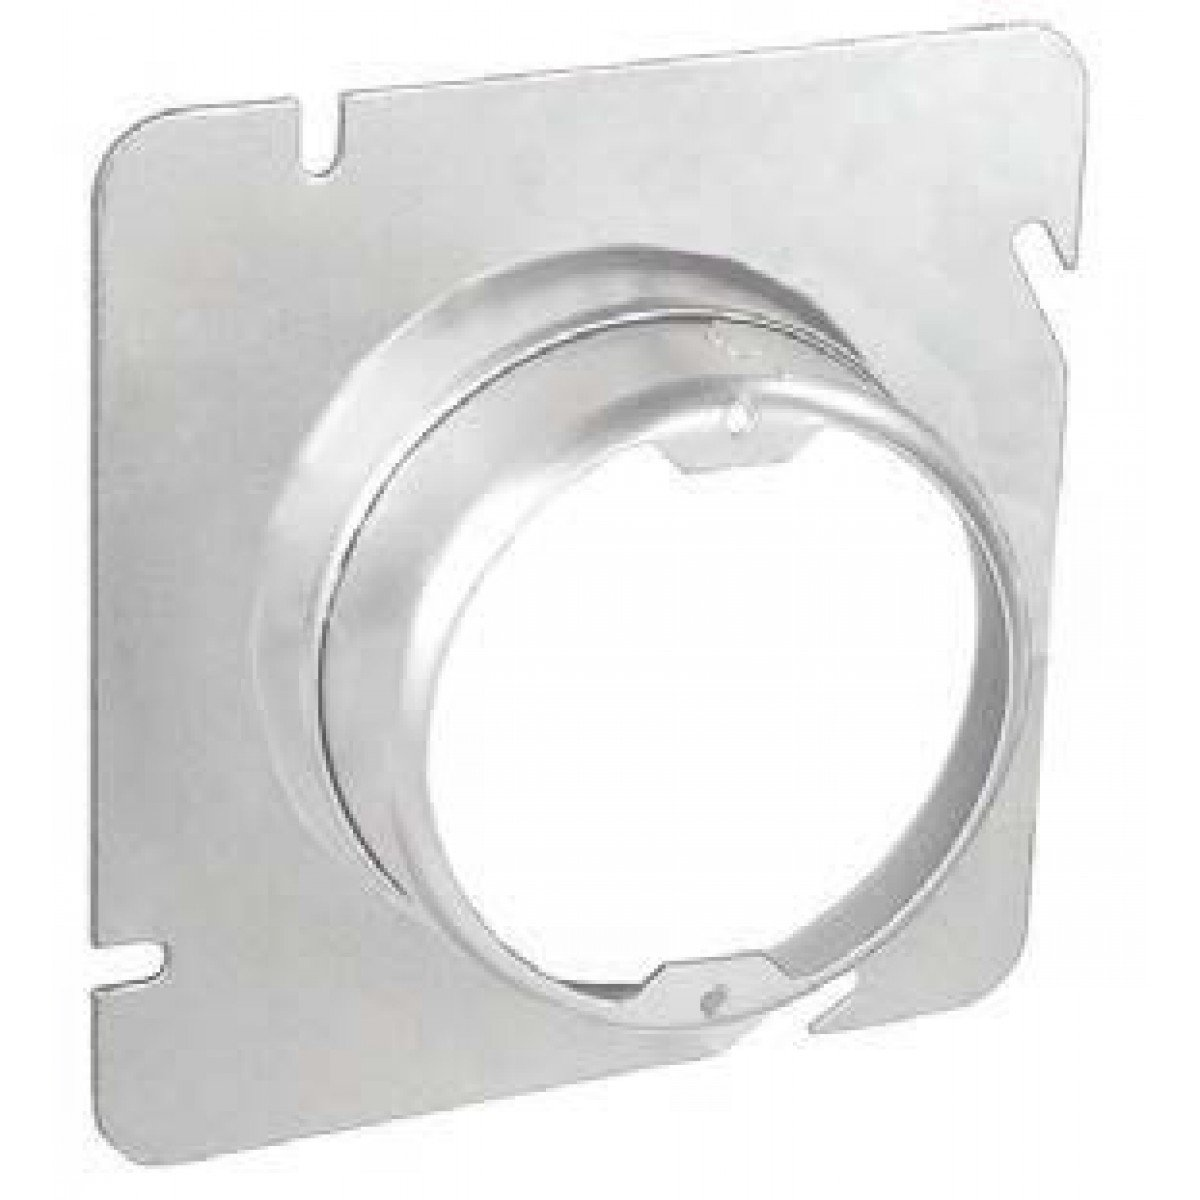 1 Pc, 4-11/16 Square to Round Adjustable Depth Device Ring, 3/4 to 1-1/2 In. Raised, Zinc Plated Steel Used w/4-11/16 In Square Boxes Installed In Ceilings, Walls & Floors